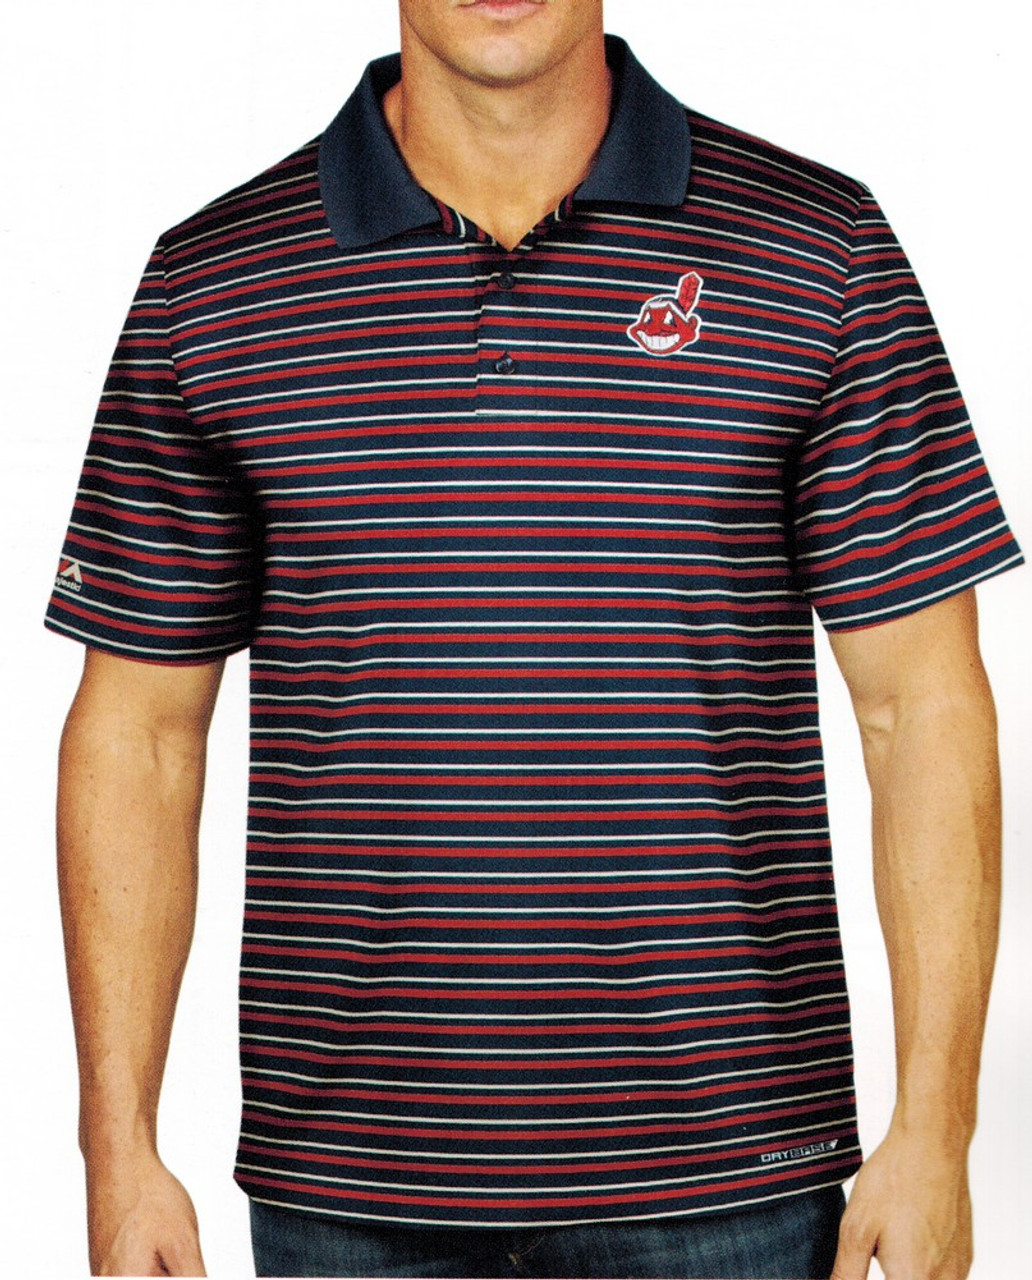 Men's Synthetic Detroit Tigers Polo Shirt